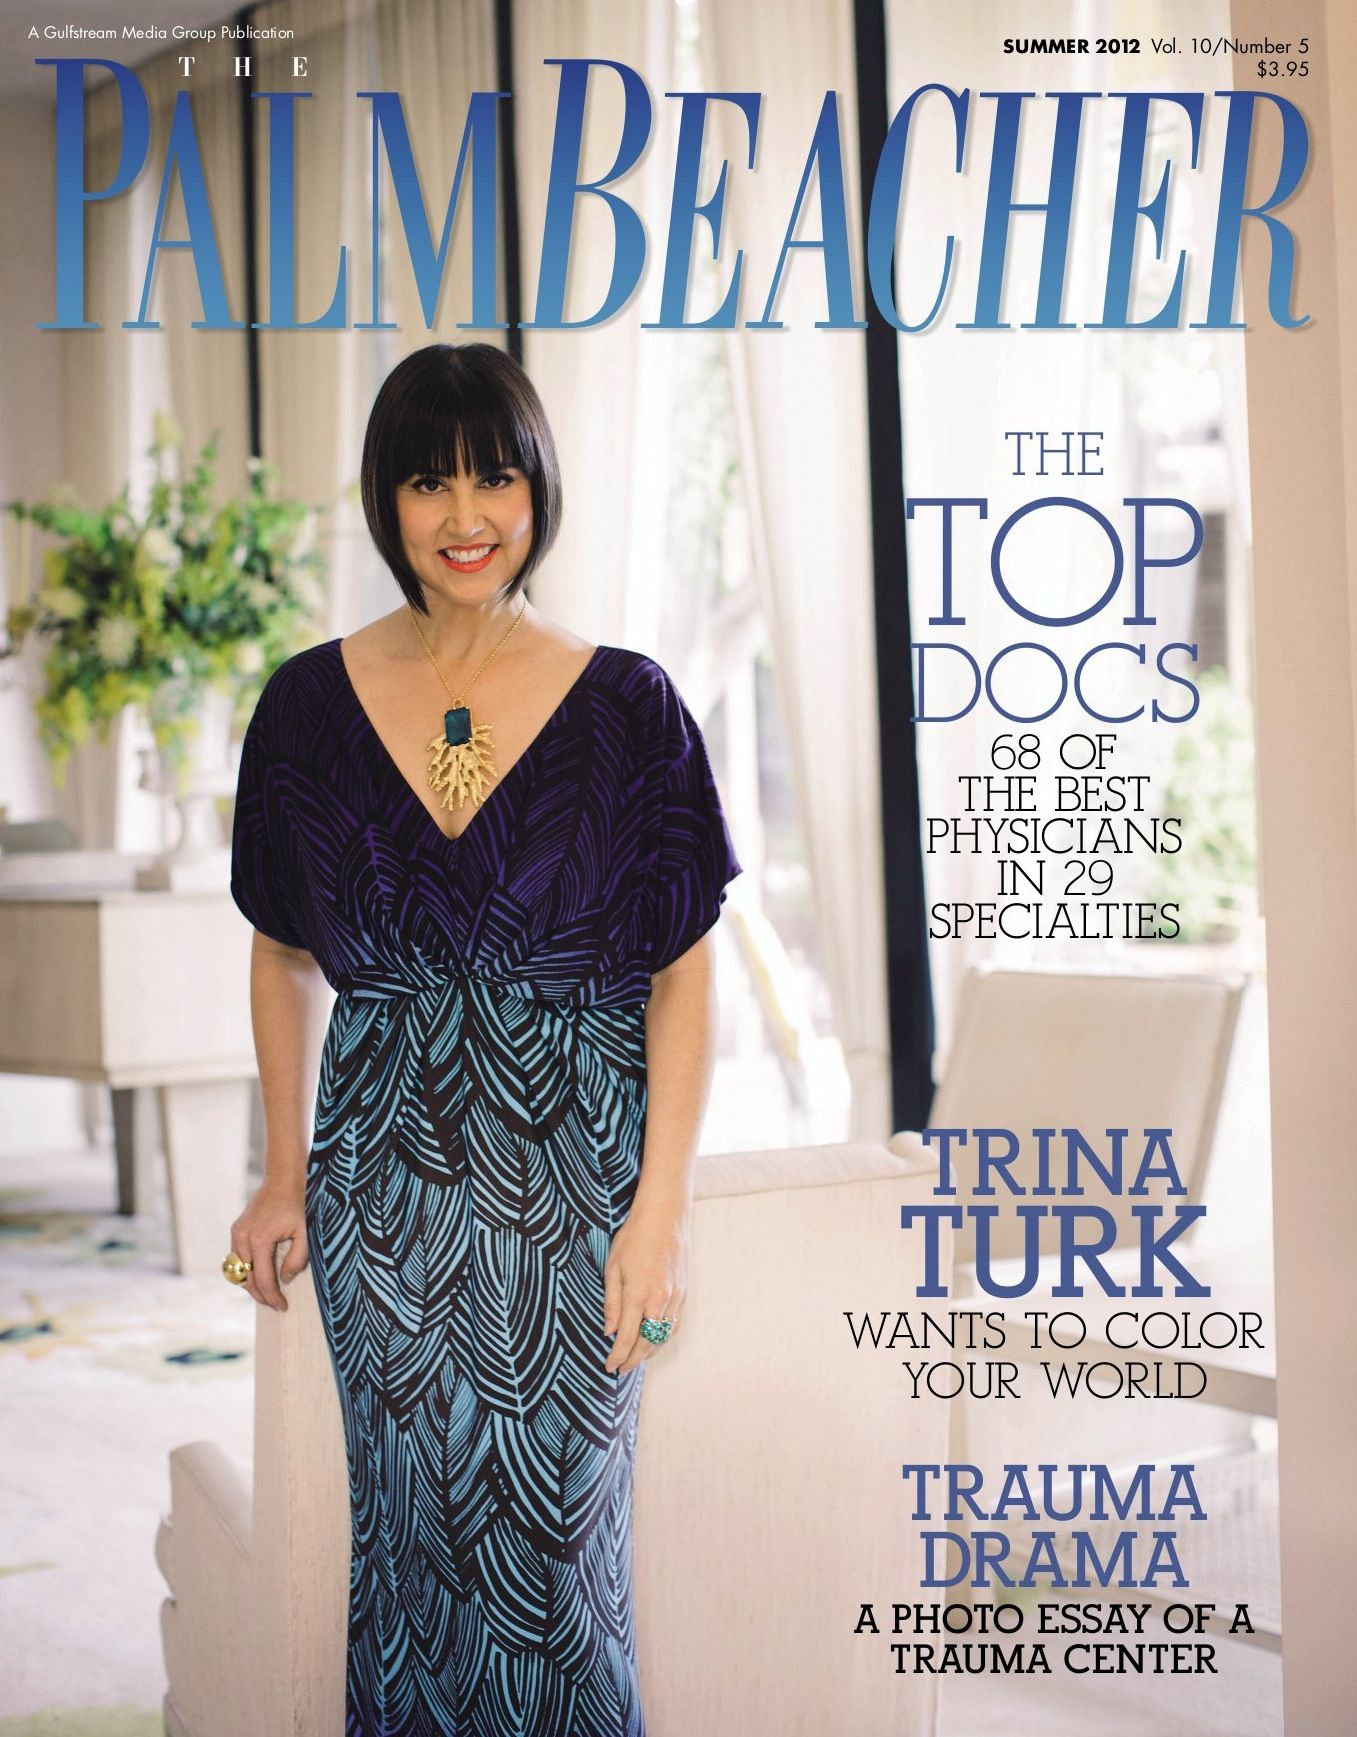 Palm Beacher Magazine, Summer 2012  http://www.PalmBeacherMagazine.com